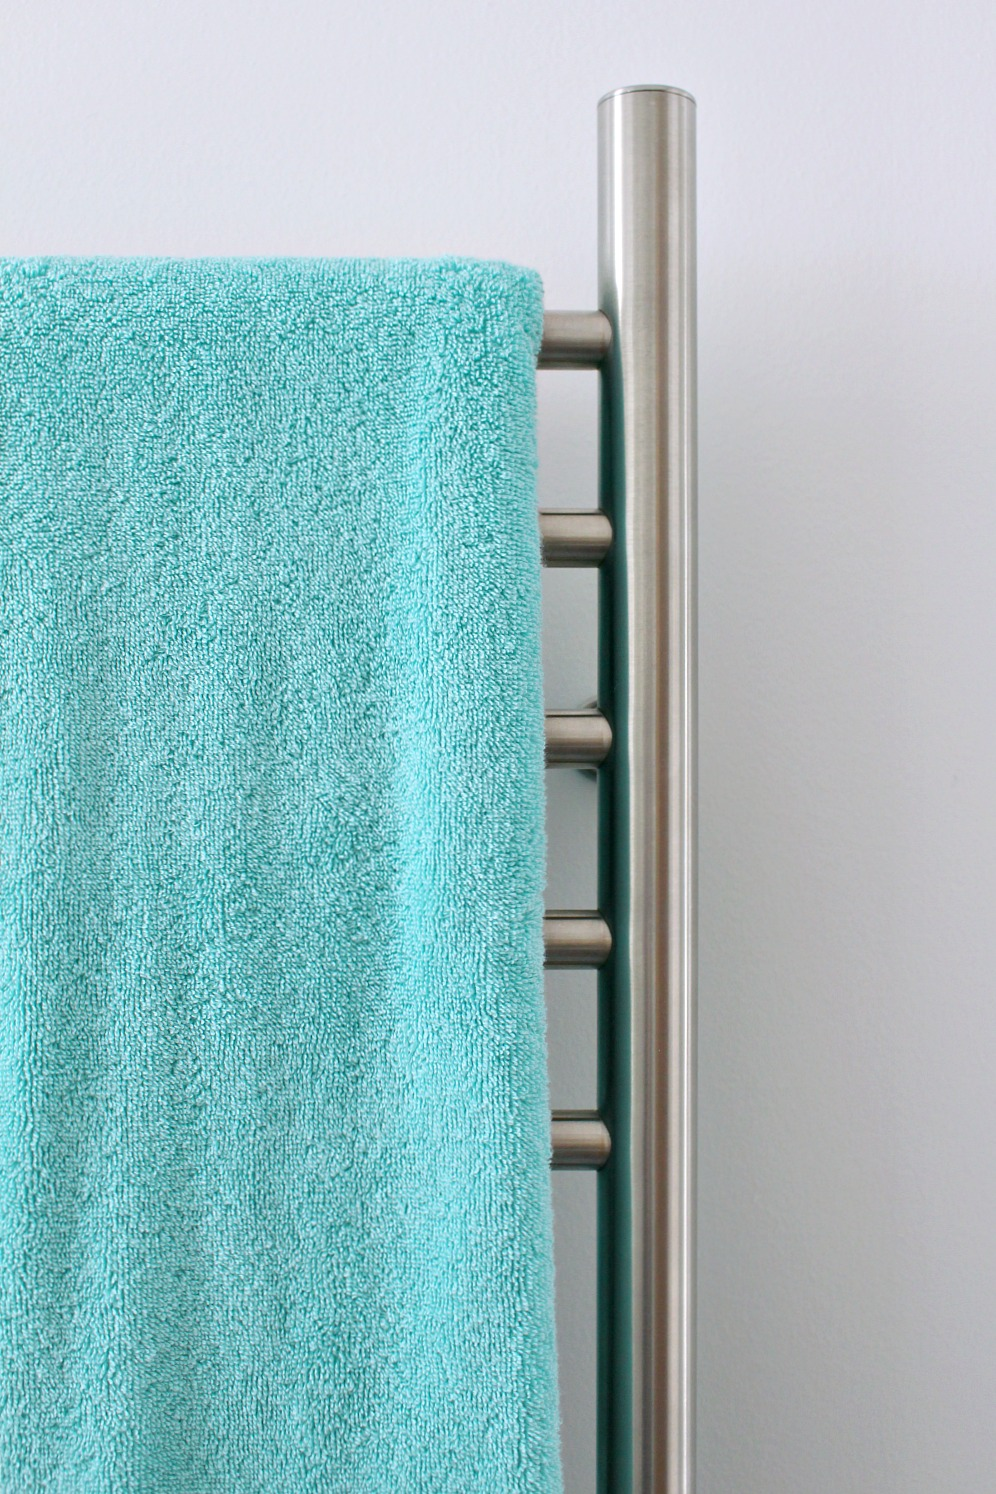 Where to buy towel warmers online